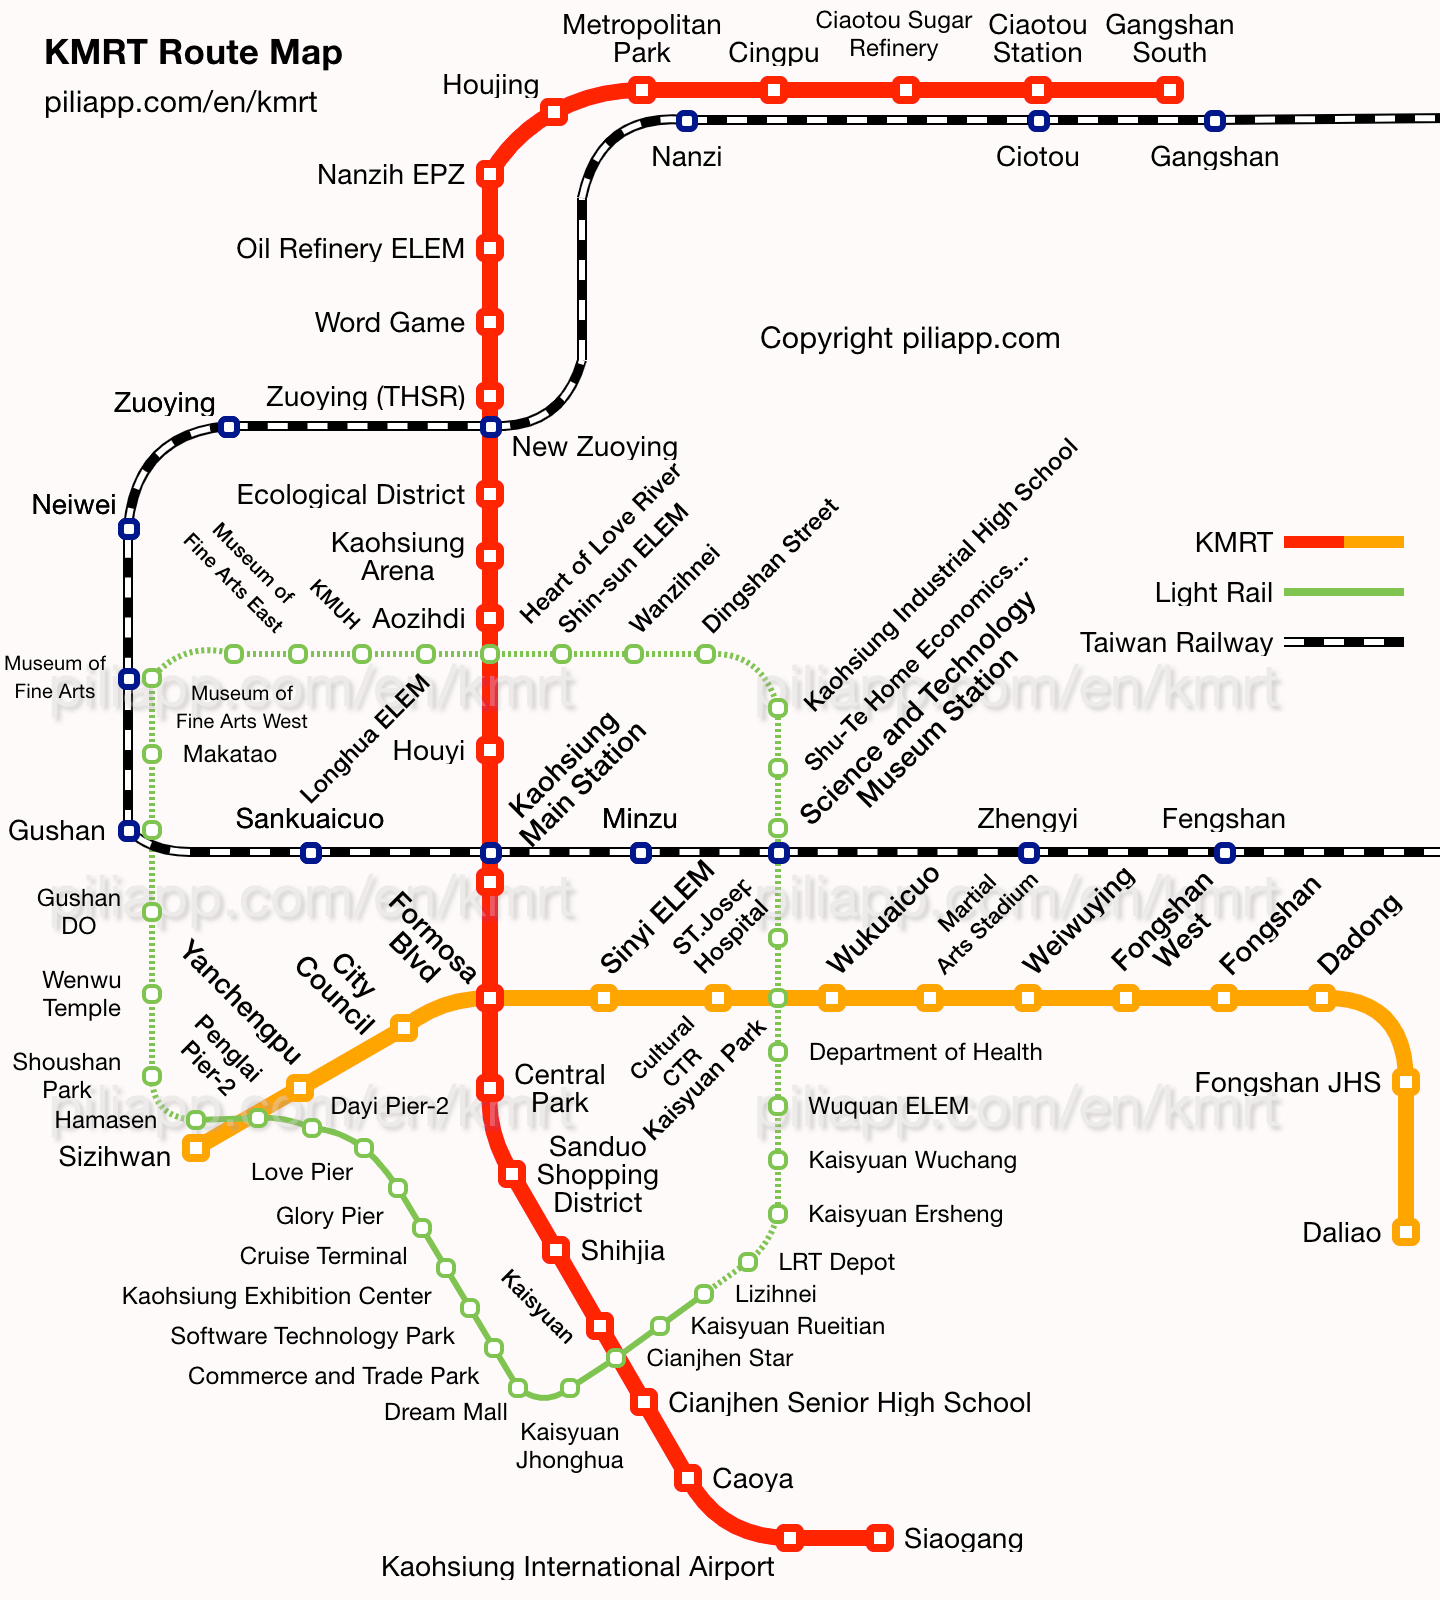 Aiport Icon Subway Map.Kaohsiung Mrt Route Map Fares And Journey Time